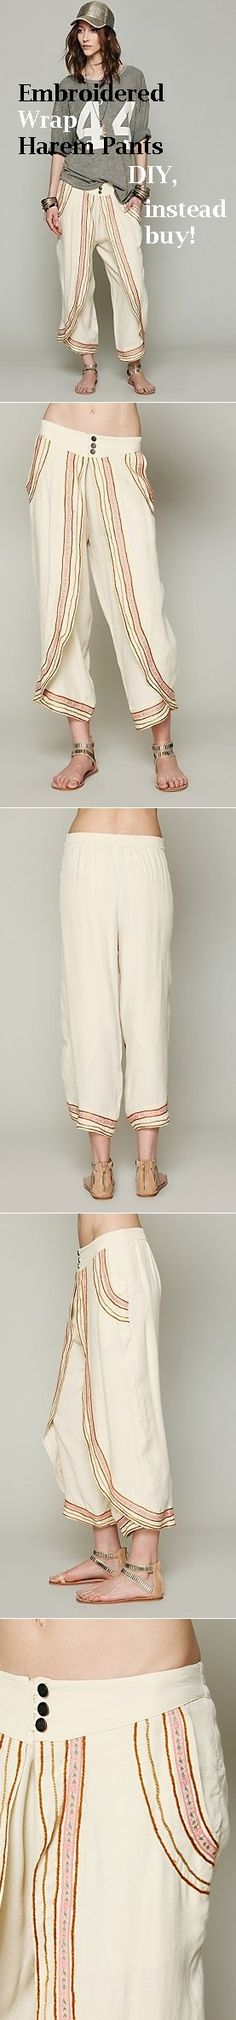 Idea - Embroidered Wrap Harem Pants DIY,